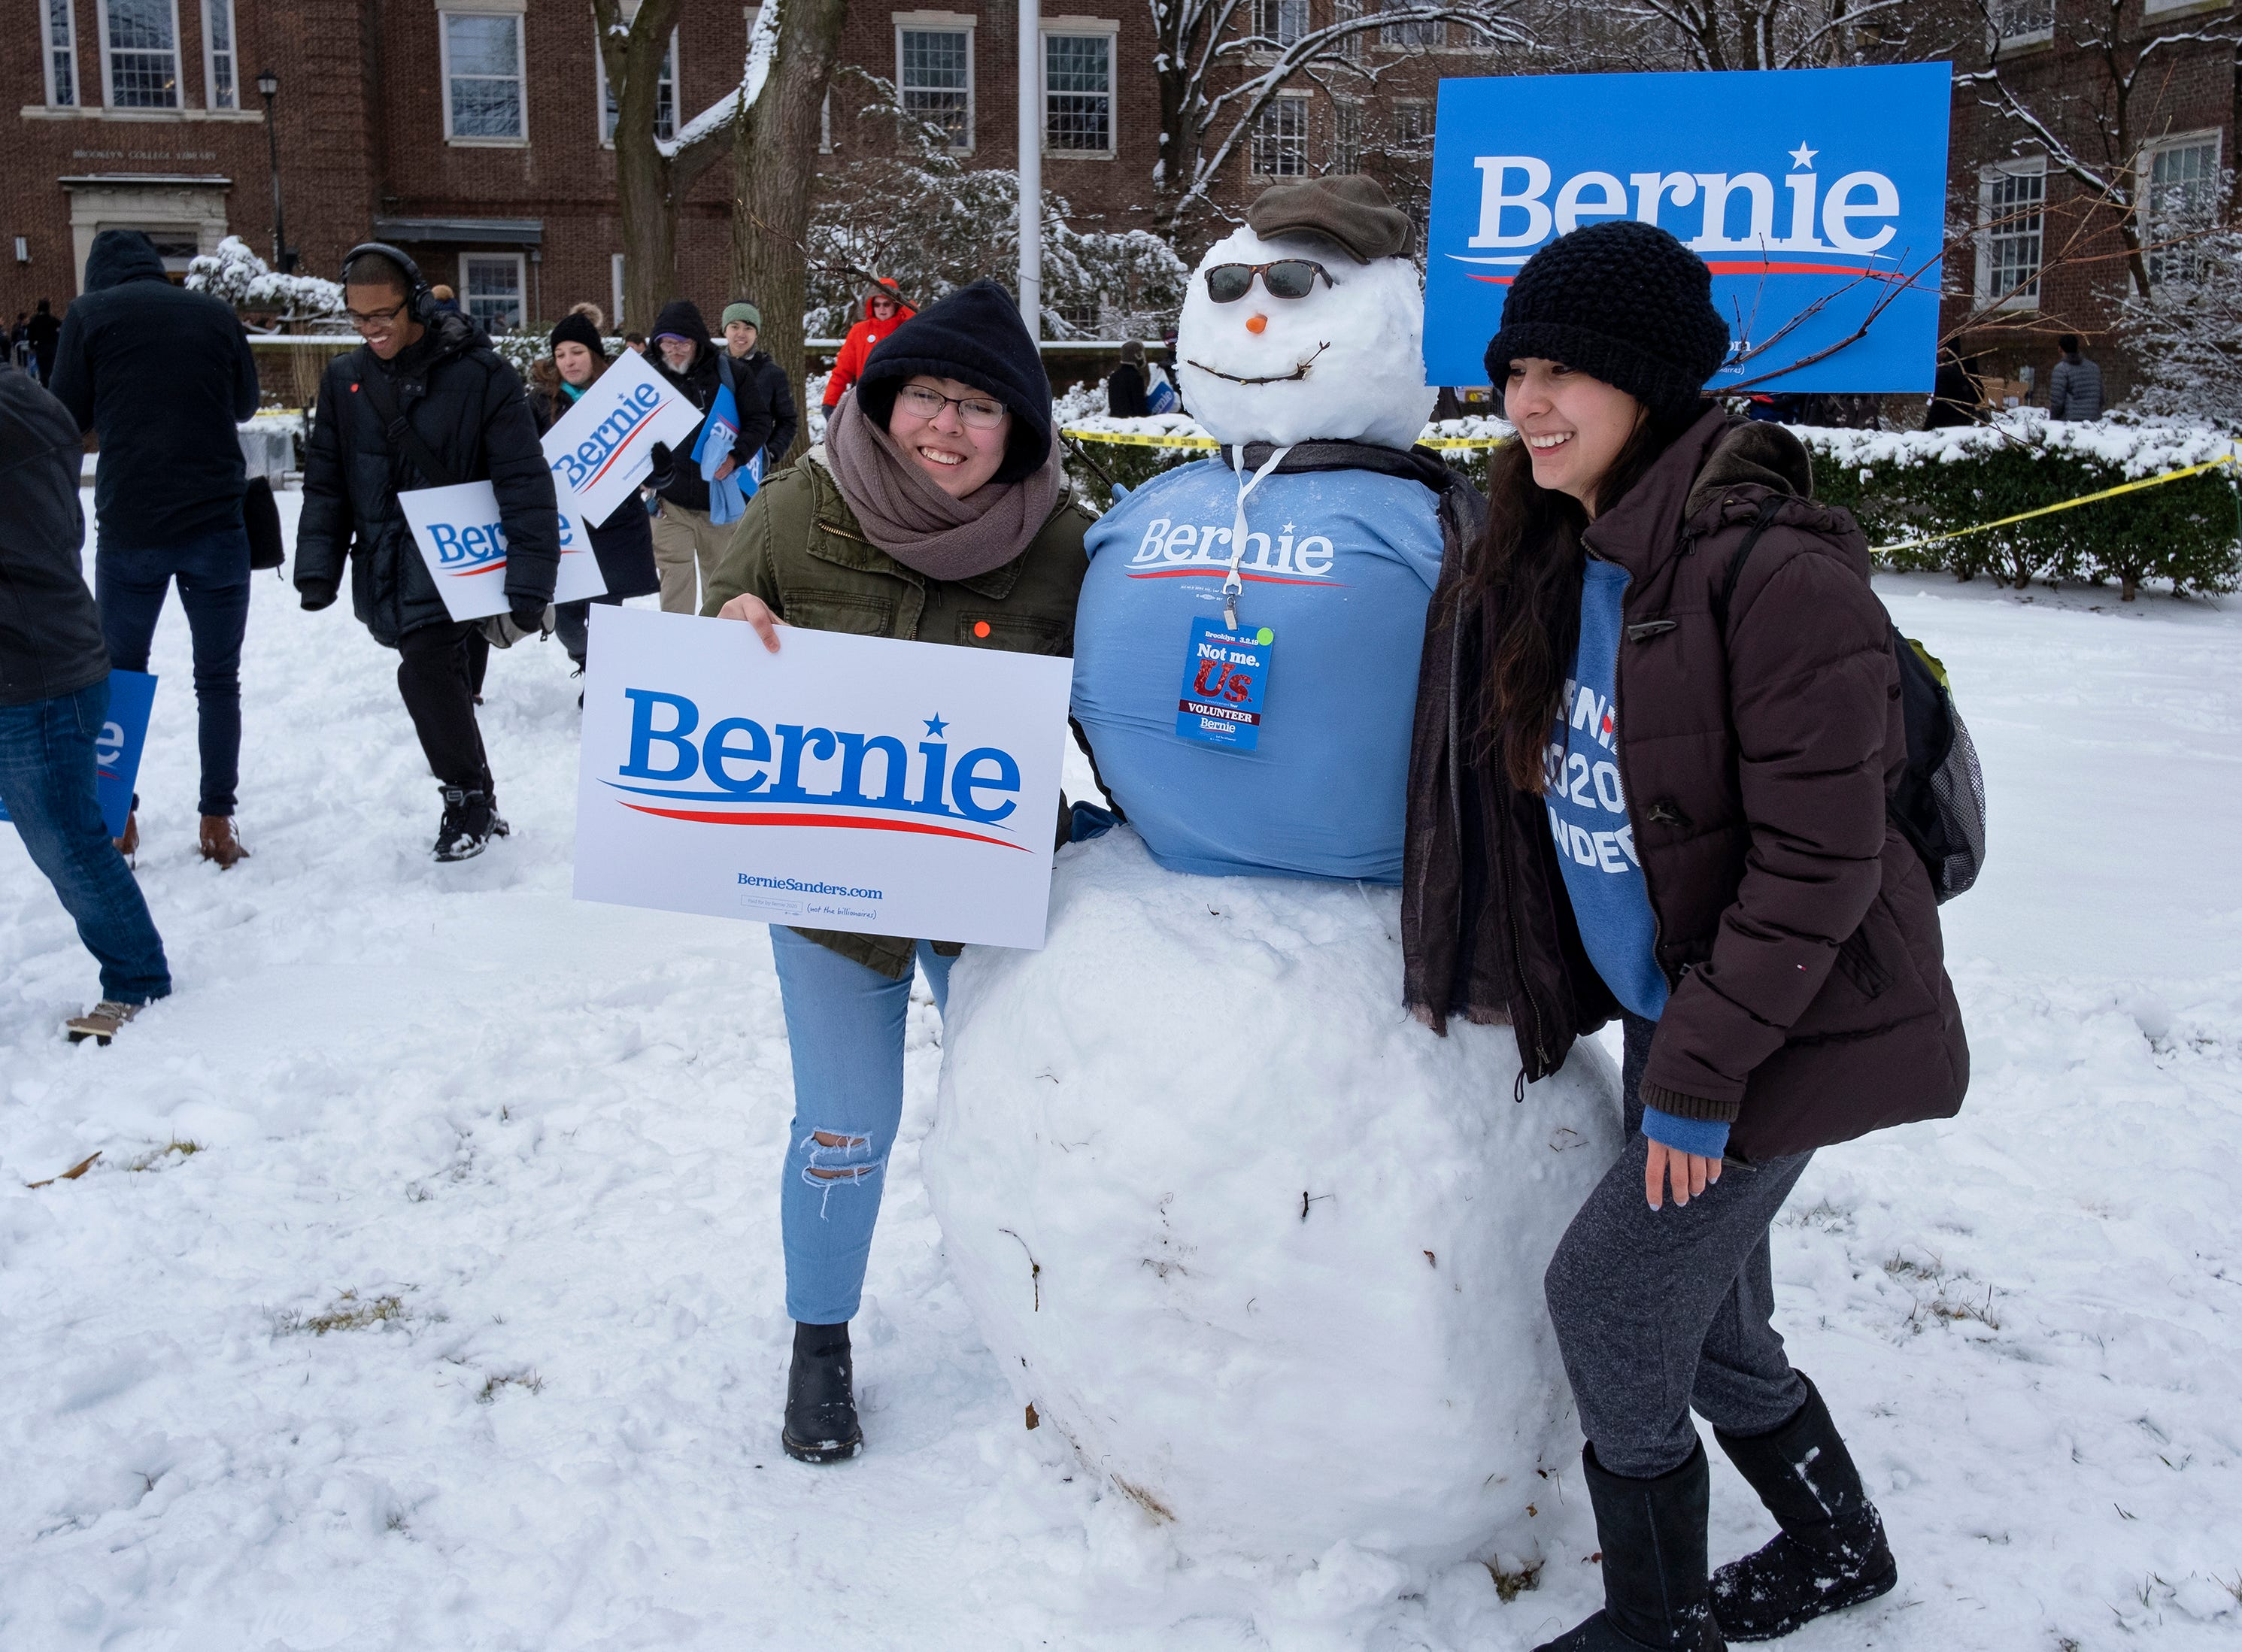 People pose with a snowman at a rally for Sen. Bernie Sanders, I-Vt., as he kicks off his political campaign Saturday, March 2, 2019, in the Brooklyn borough of New York as he makes a bid for President of the United States in 2020, his second campaign for the office. (AP Photo/Craig Ruttle)